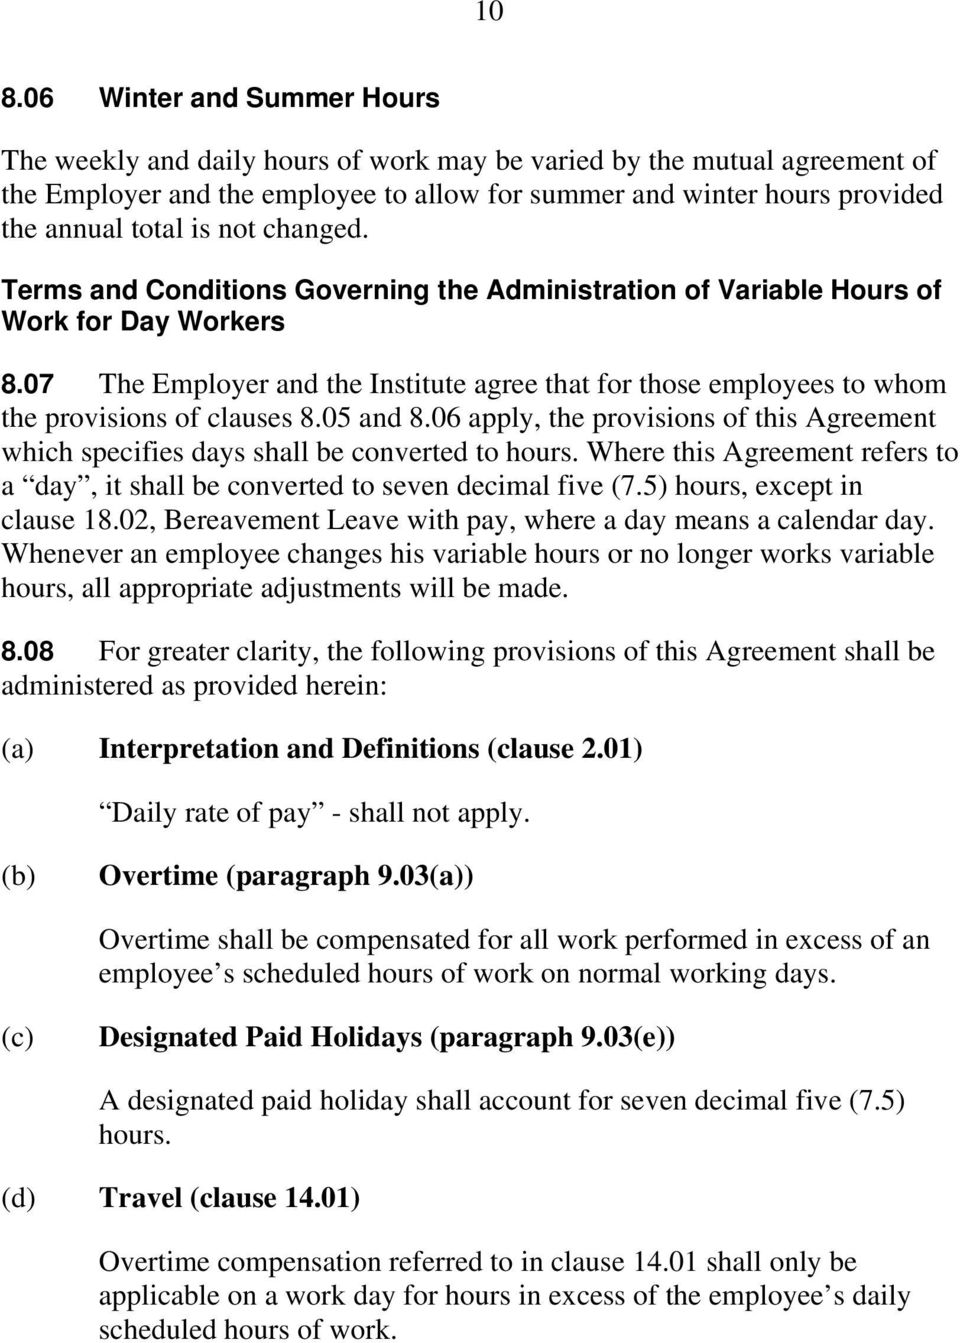 07 The Employer and the Institute agree that for those employees to whom the provisions of clauses 8.05 and 8.